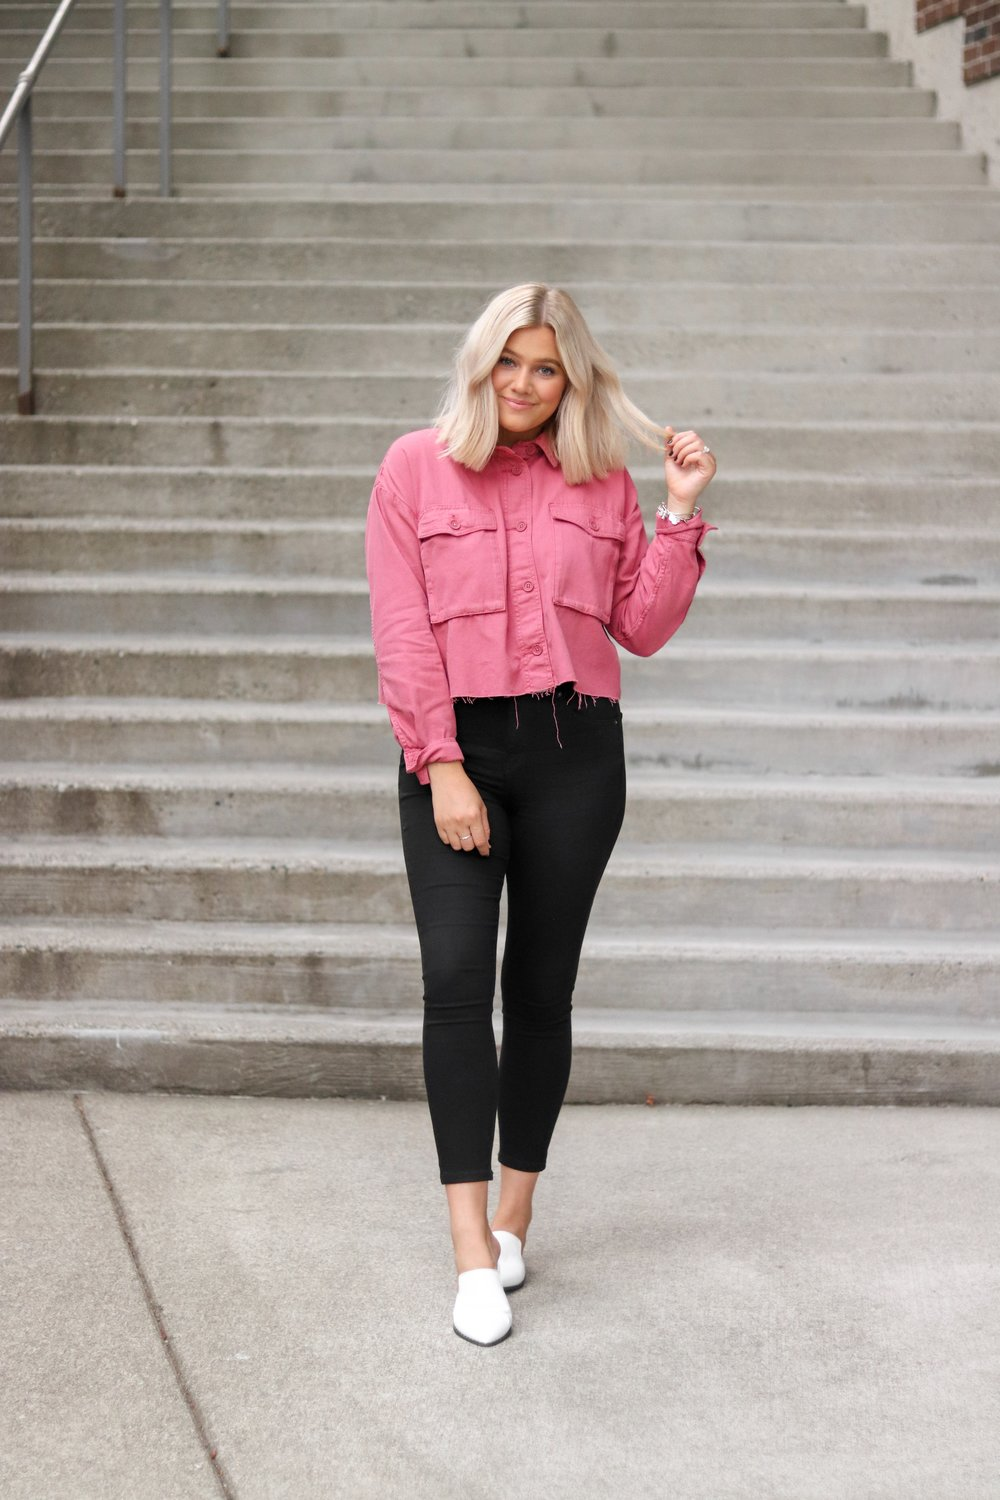 Casual Cool Under $75 With Nordstrom - Bre Sheppard 1.JPG